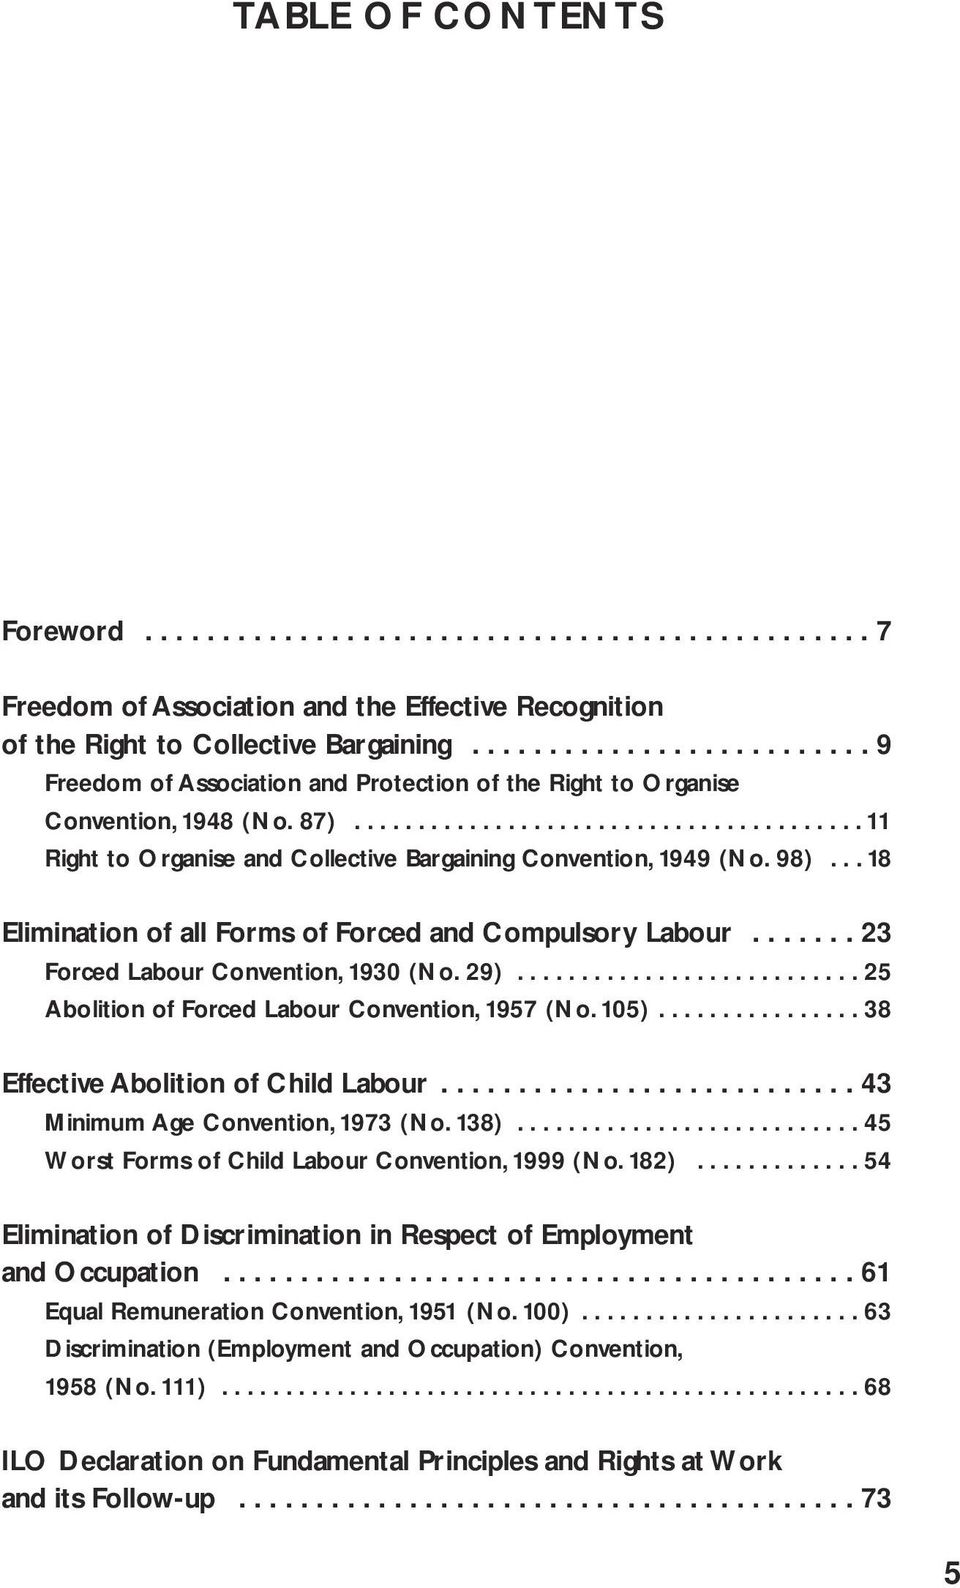 98)... 18 Elimination of all Forms of Forced and Compulsory Labour....... 23 Forced Labour Convention, 1930 (No. 29)........................... 25 Abolition of Forced Labour Convention, 1957 (No.